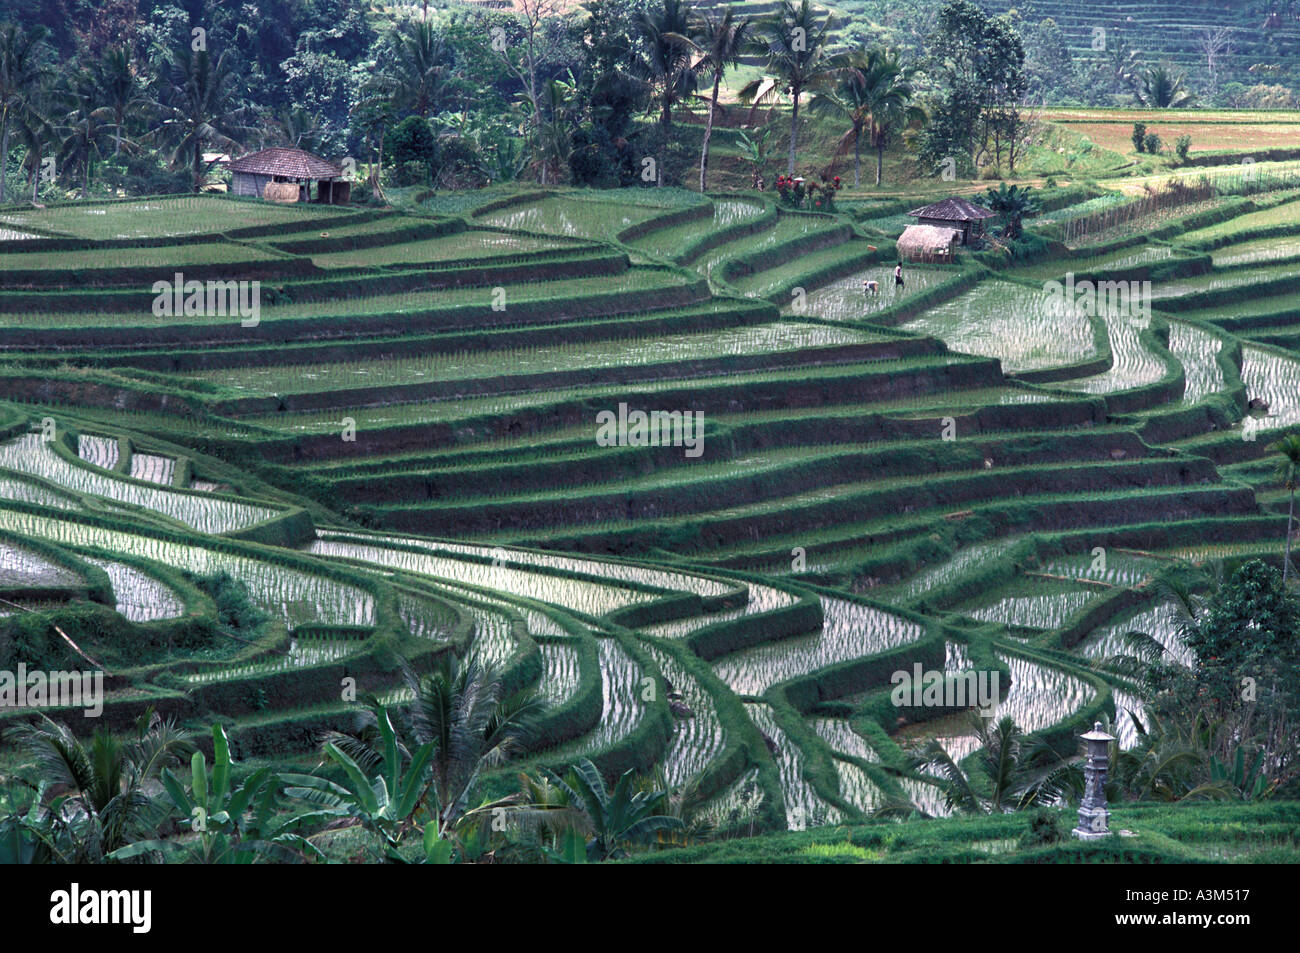 The rice bowl of Jatiluwih viewed from the lower slopes of Mount Gunung Batukaru Bali Indonesia - Stock Image